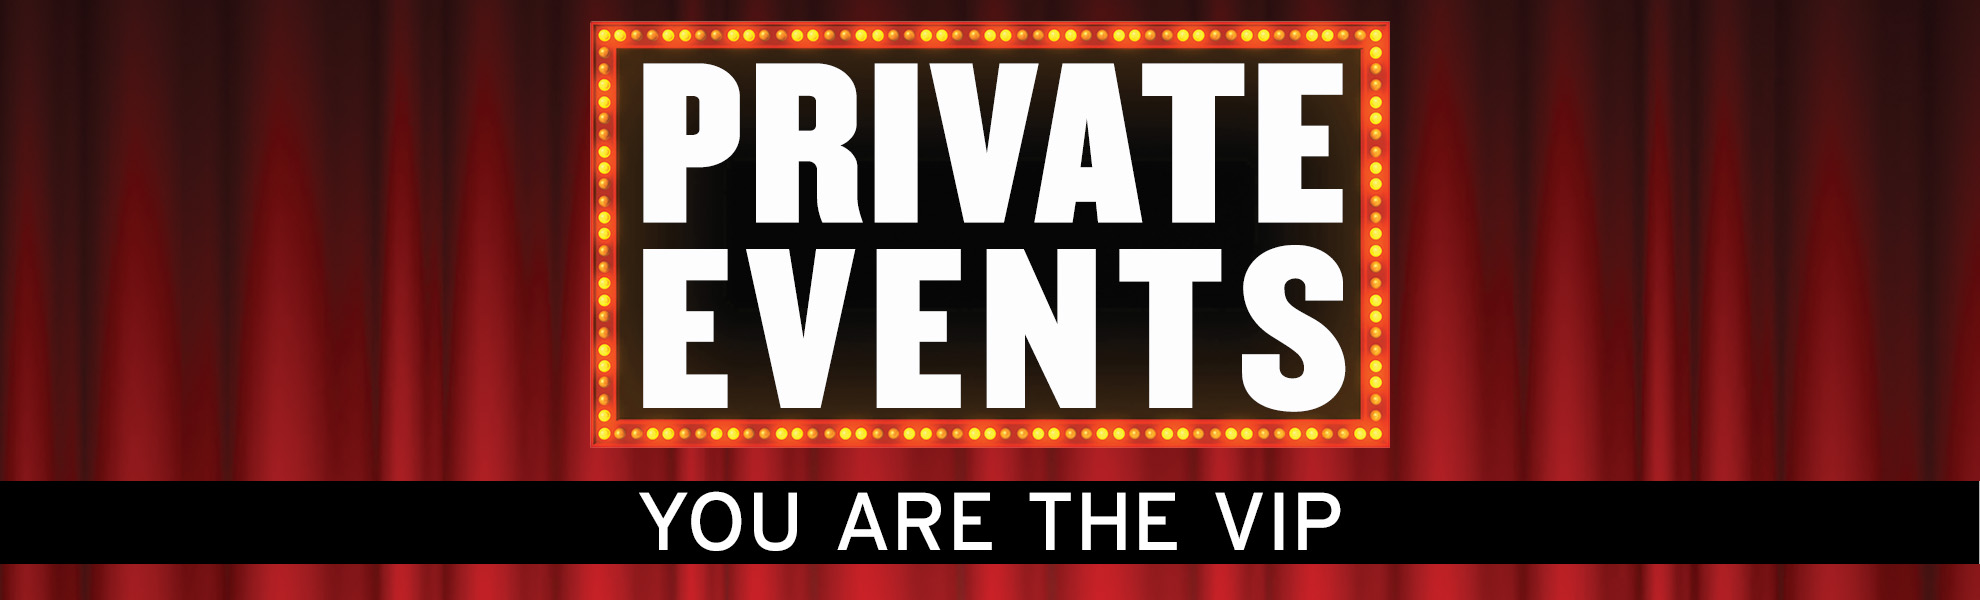 The Upfront Theatre | Improv Private Events